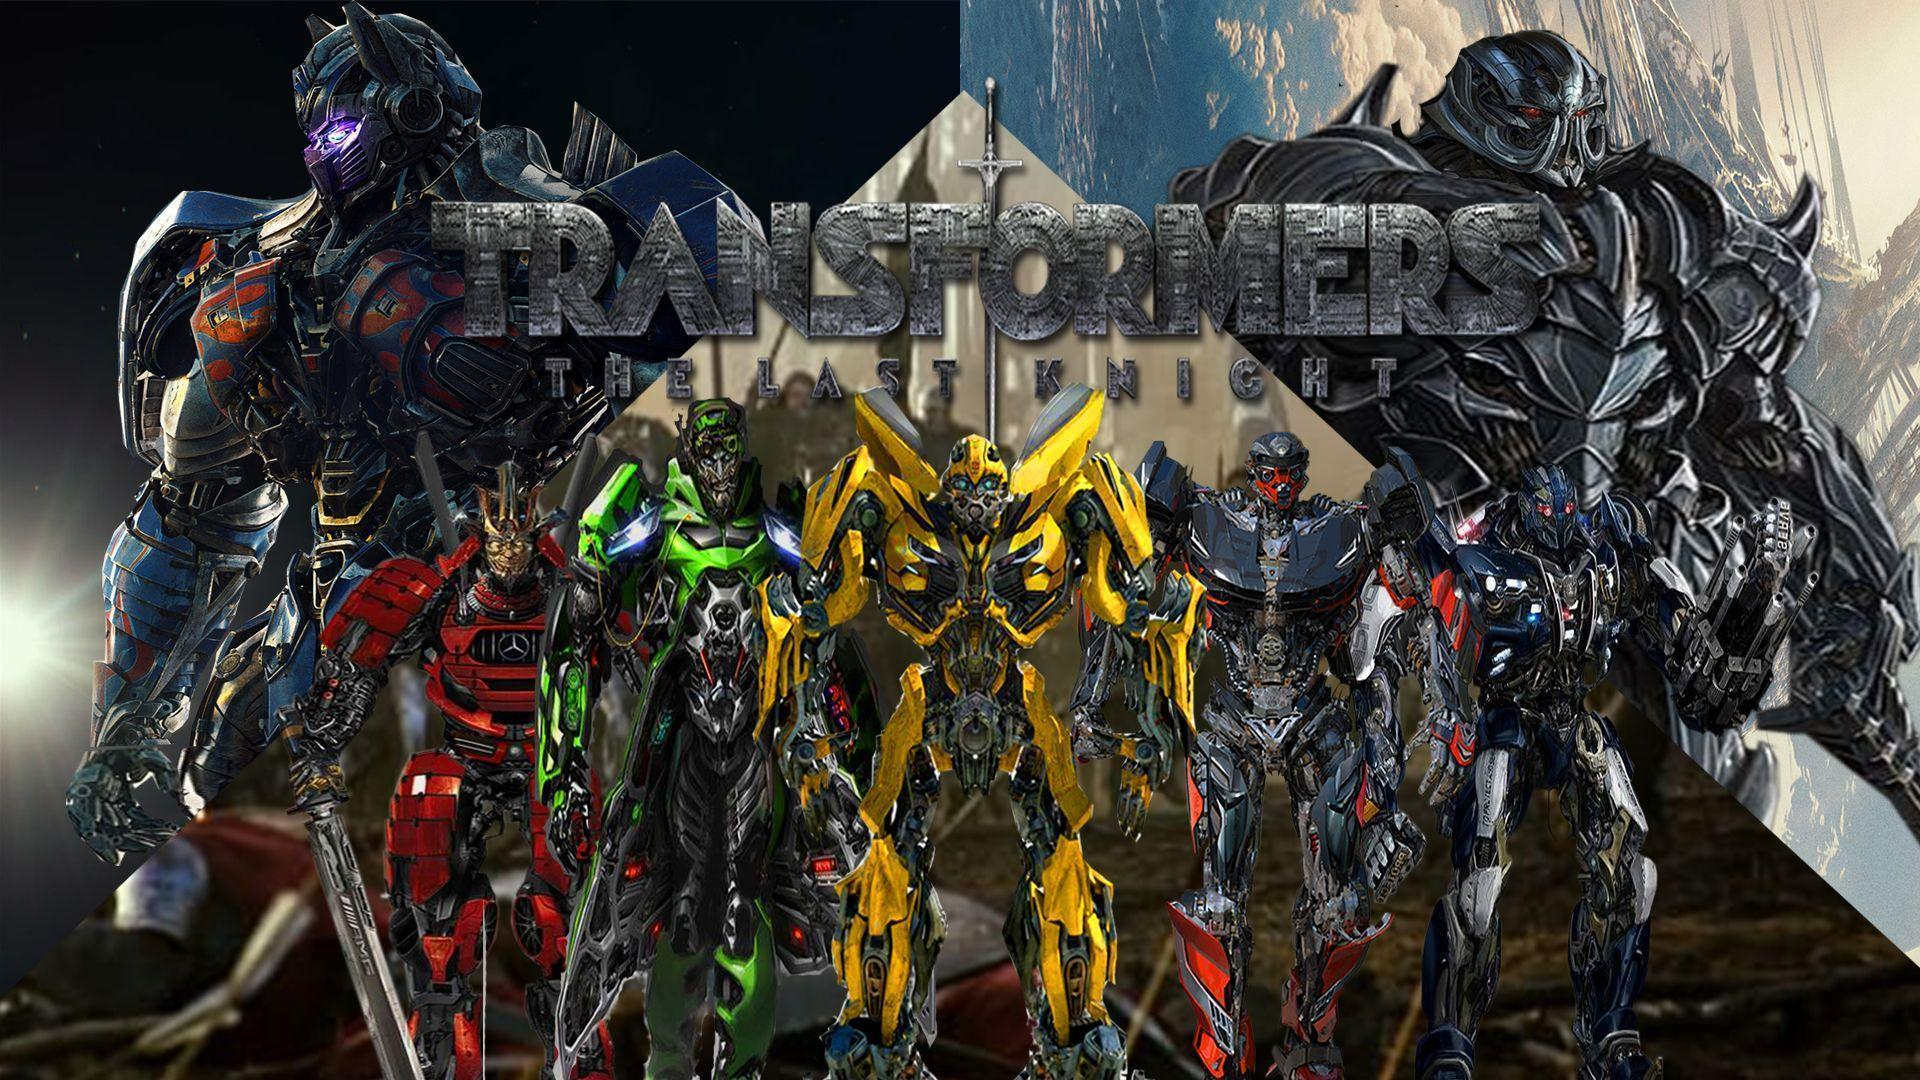 Imagenes De Transformers: Transformers: The Last Knight Wallpapers